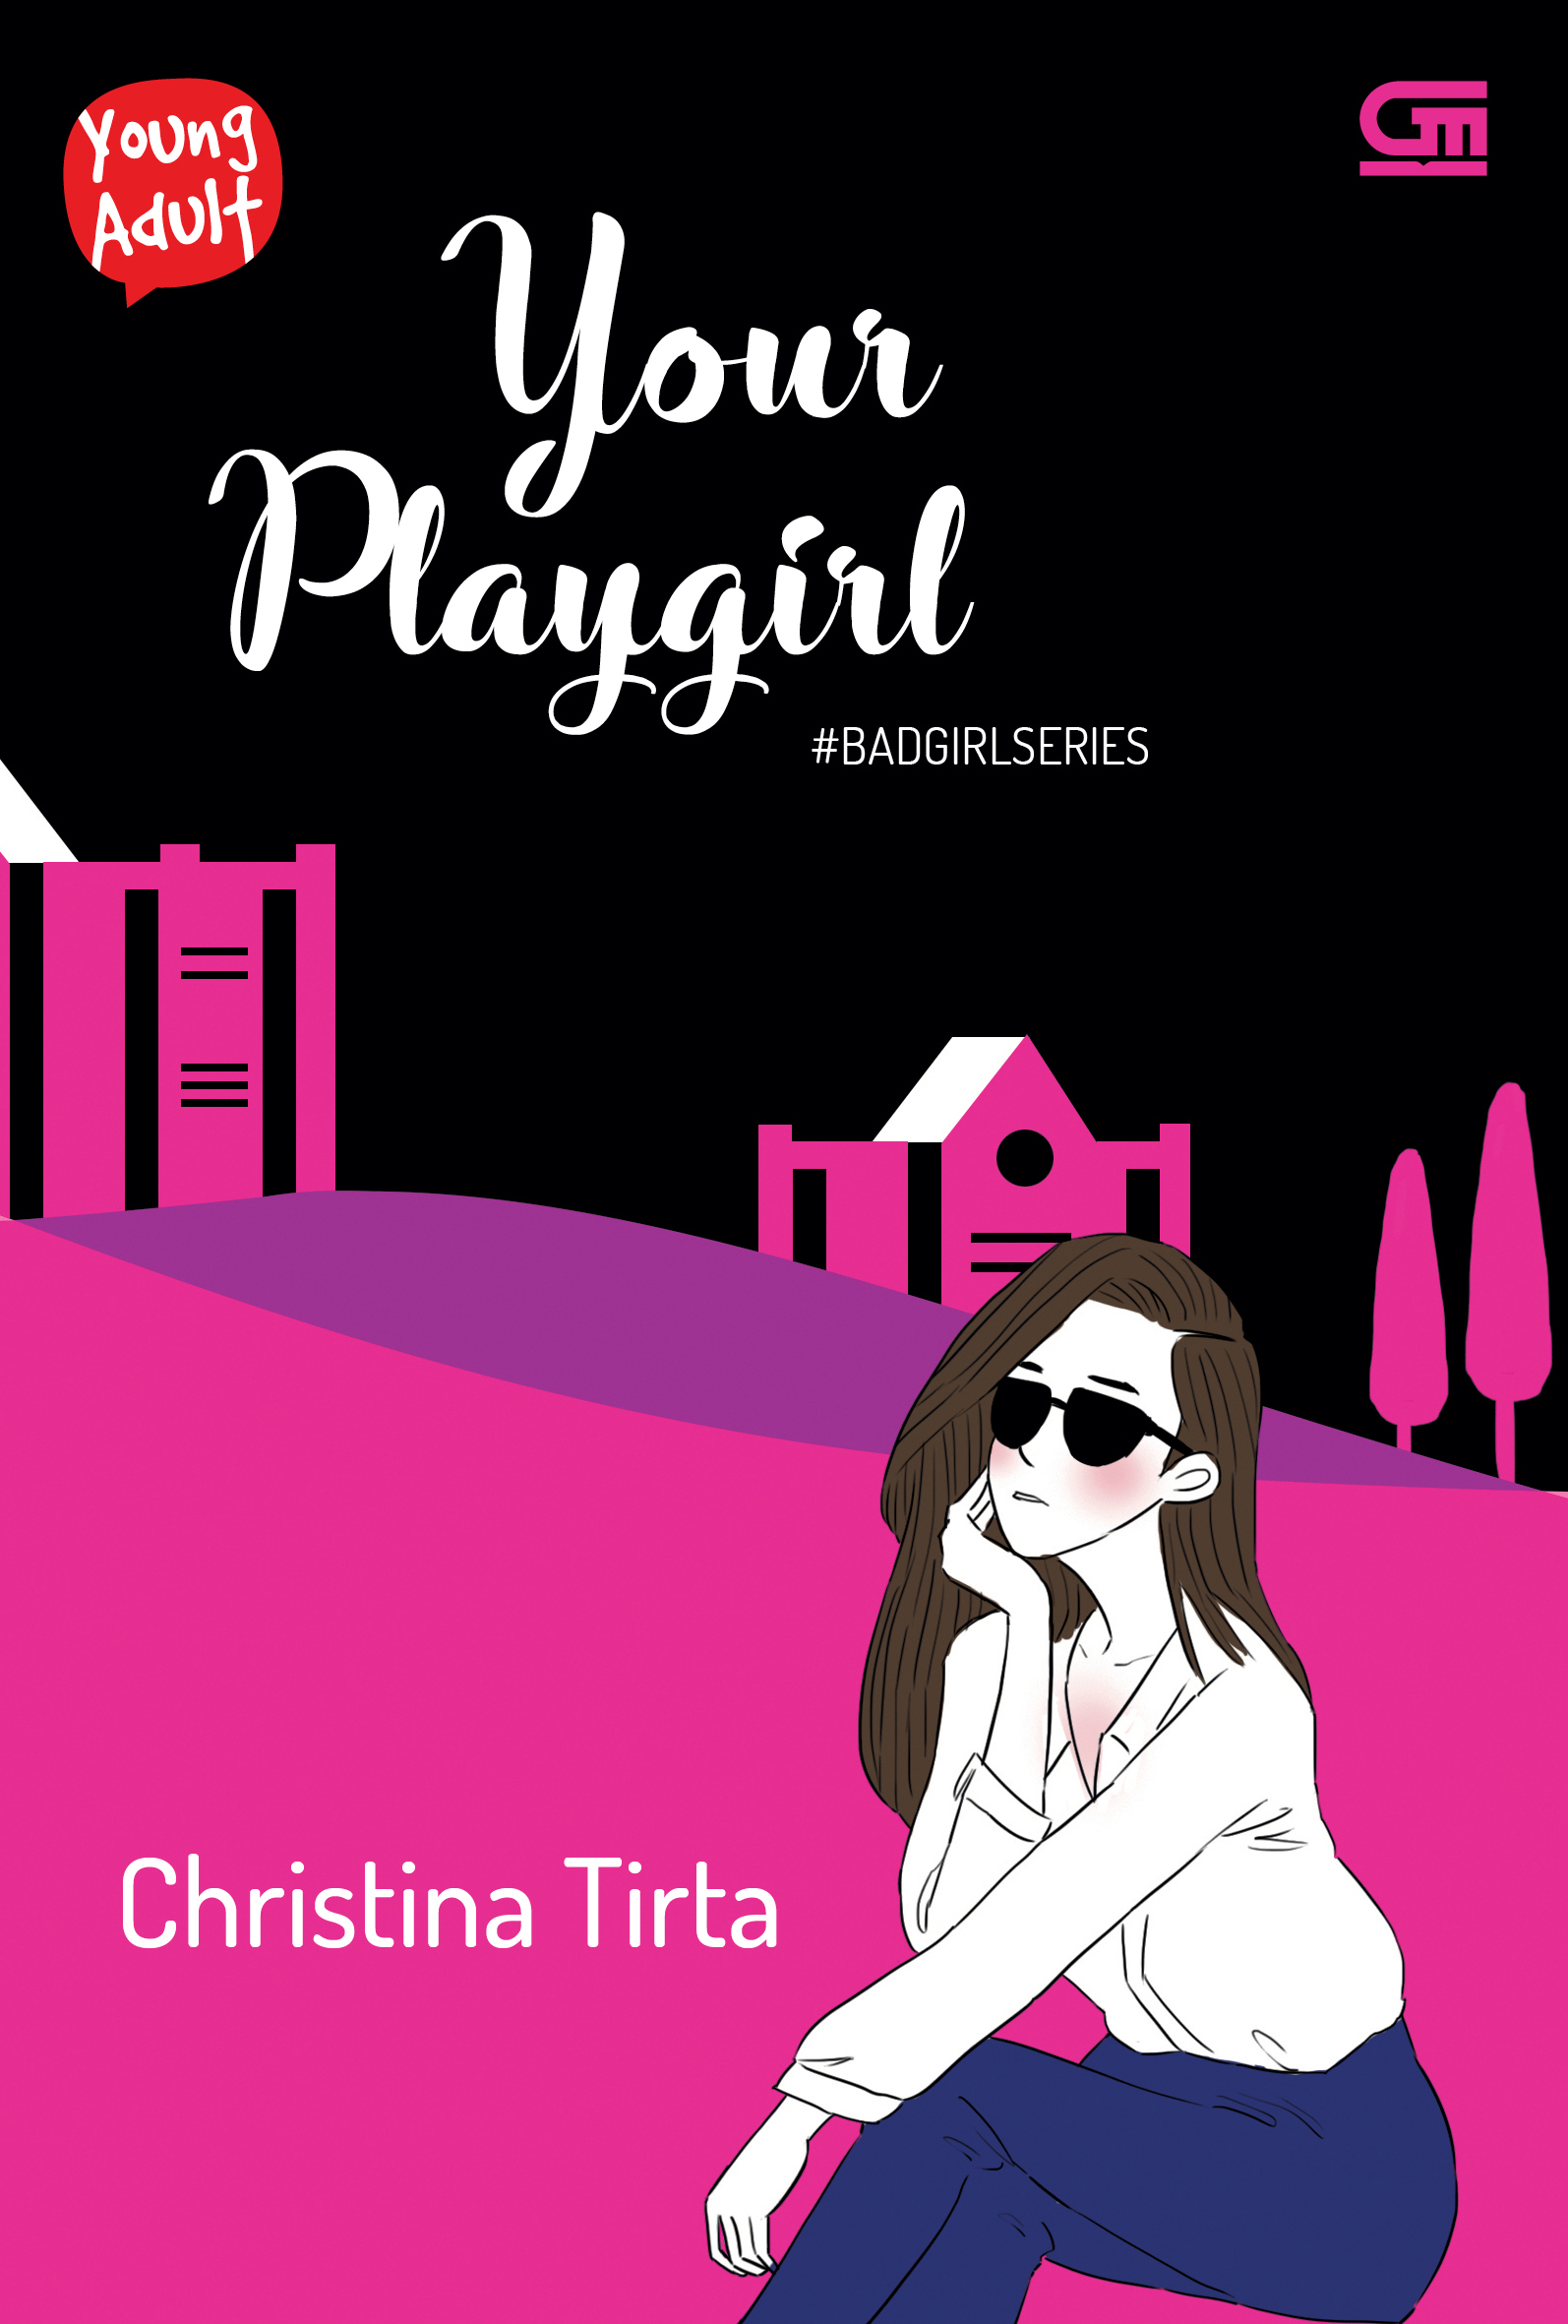 Young Adult: Bad Girl Series#2: Your Playgirl